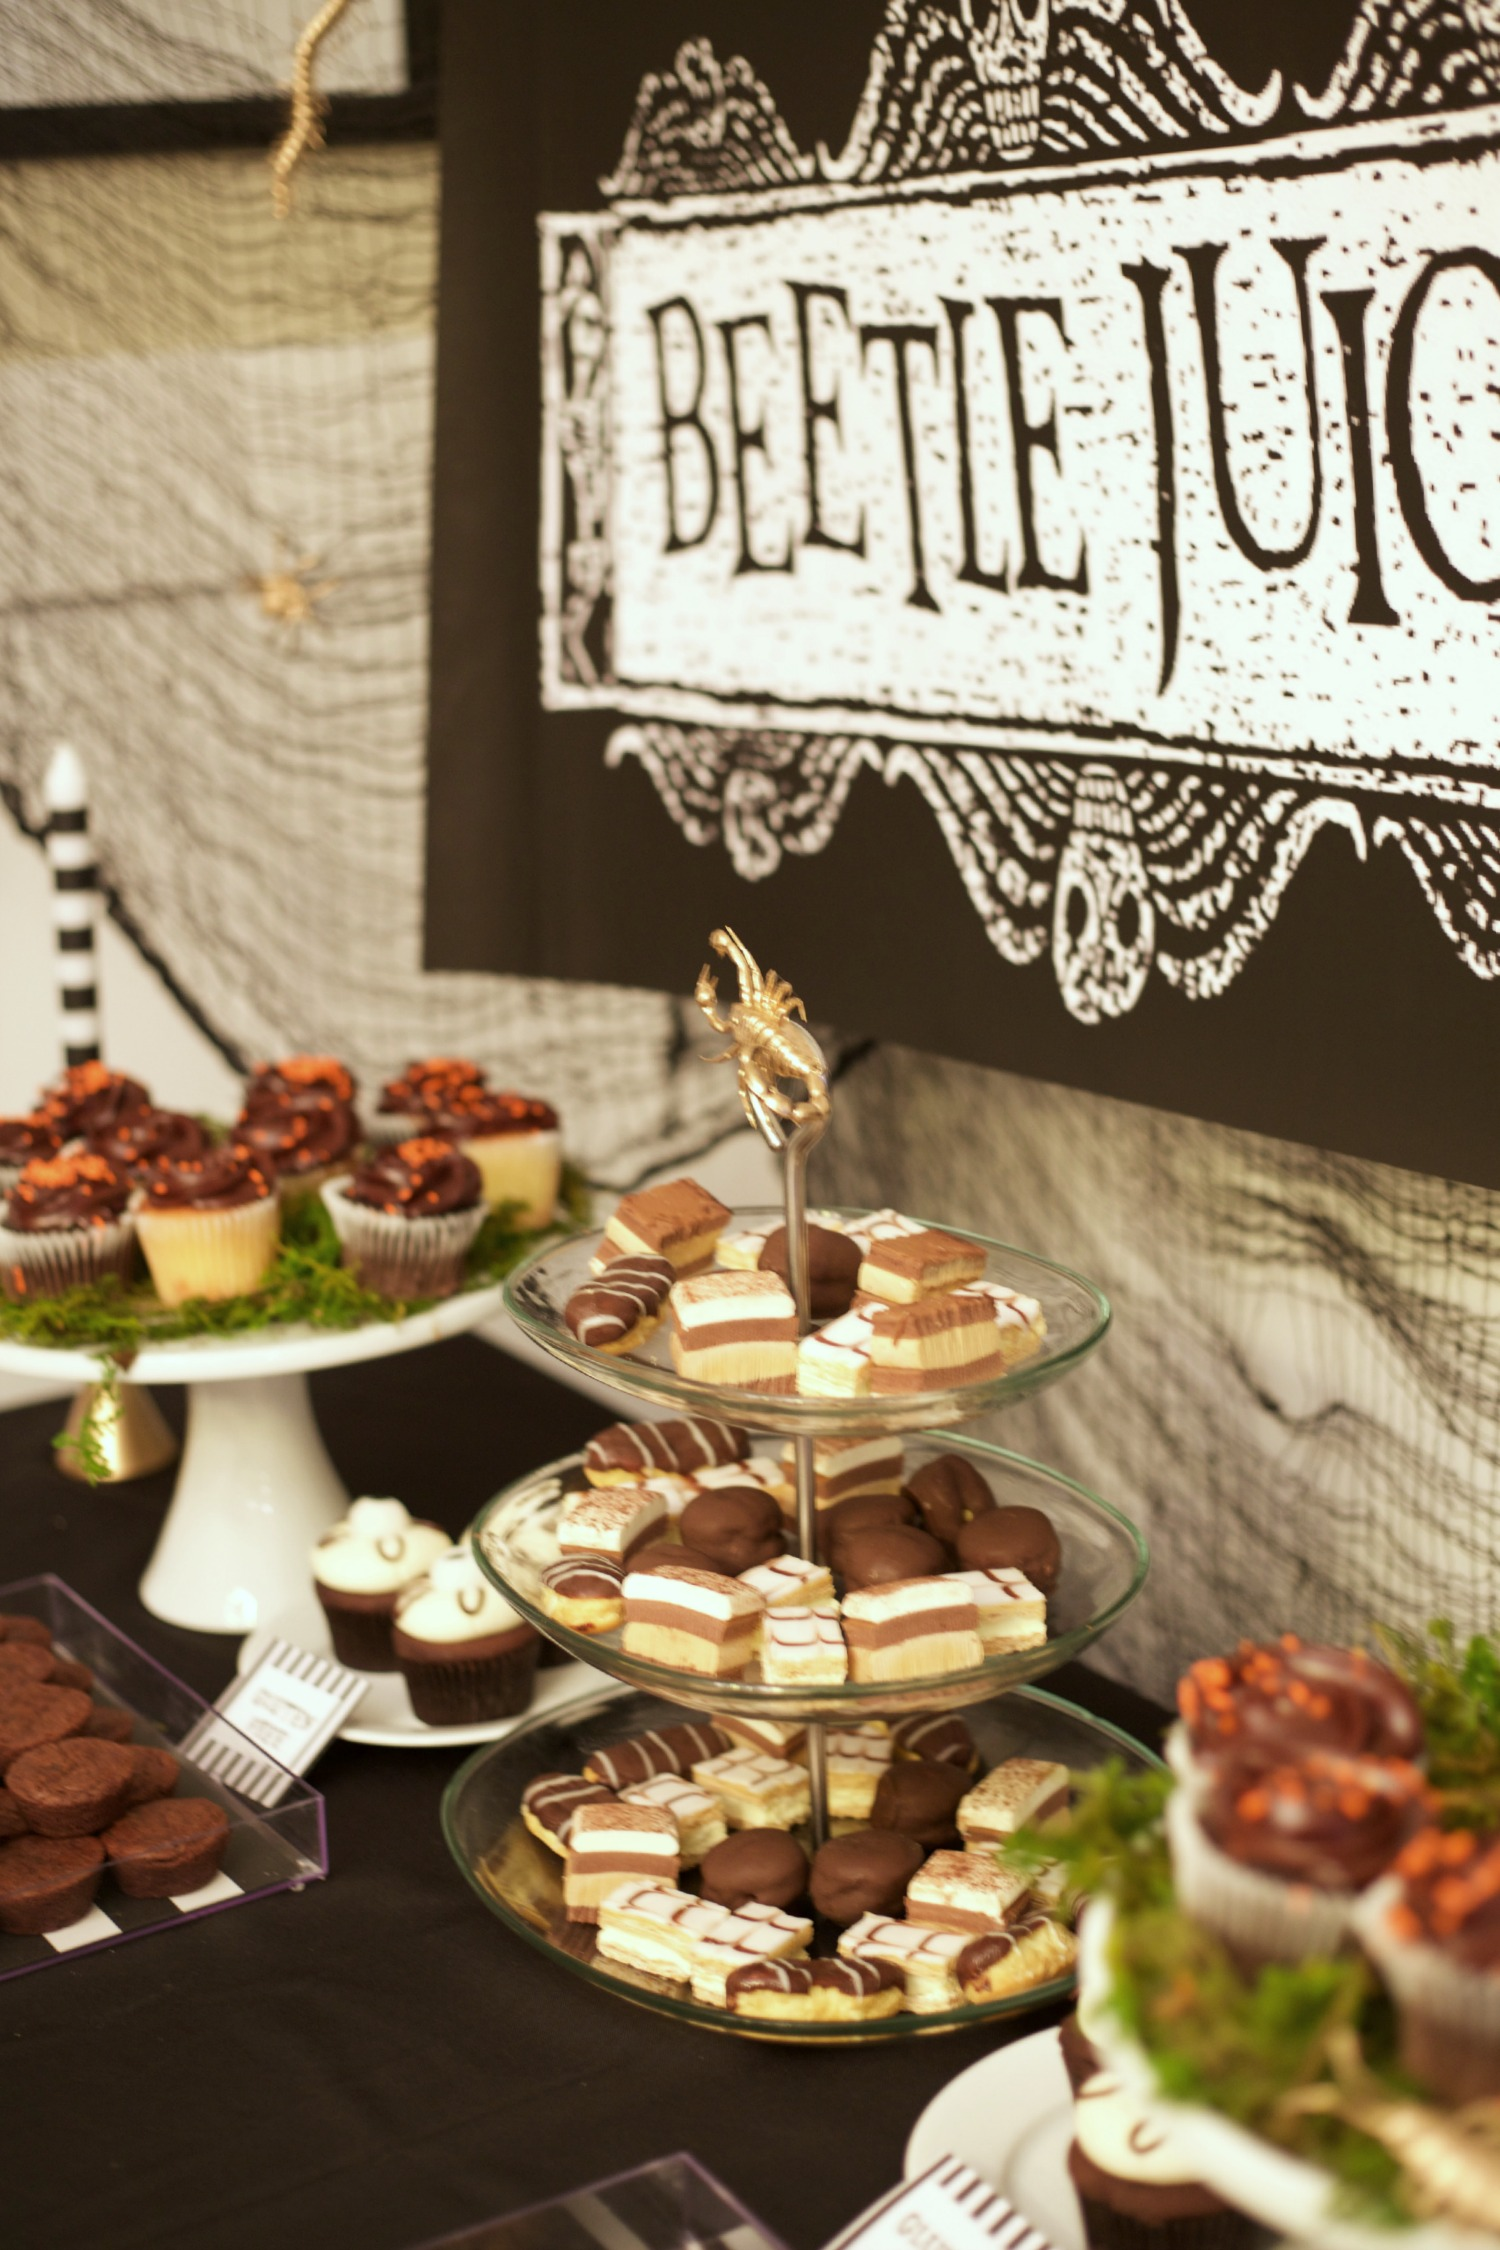 Beetlejuice Halloween Party | PartiesforPennies.com |  Dessert Table